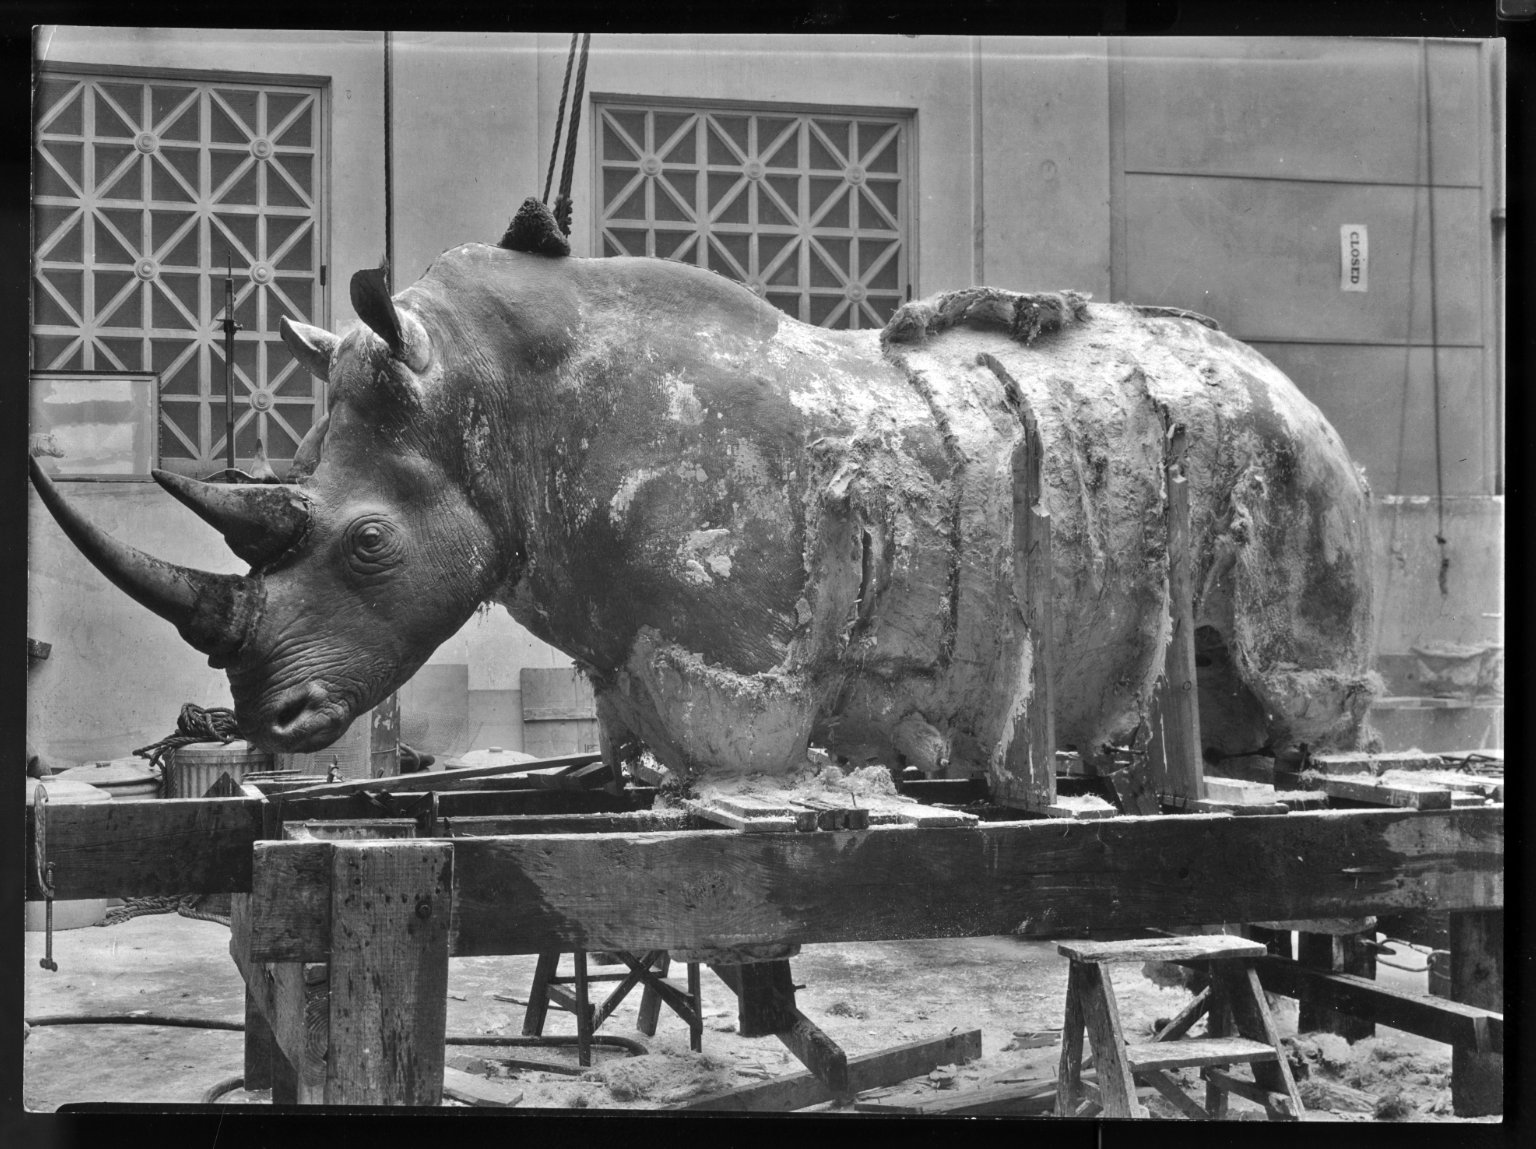 Rhinoceros mount being prepared for exhibit at the Filed Musuem